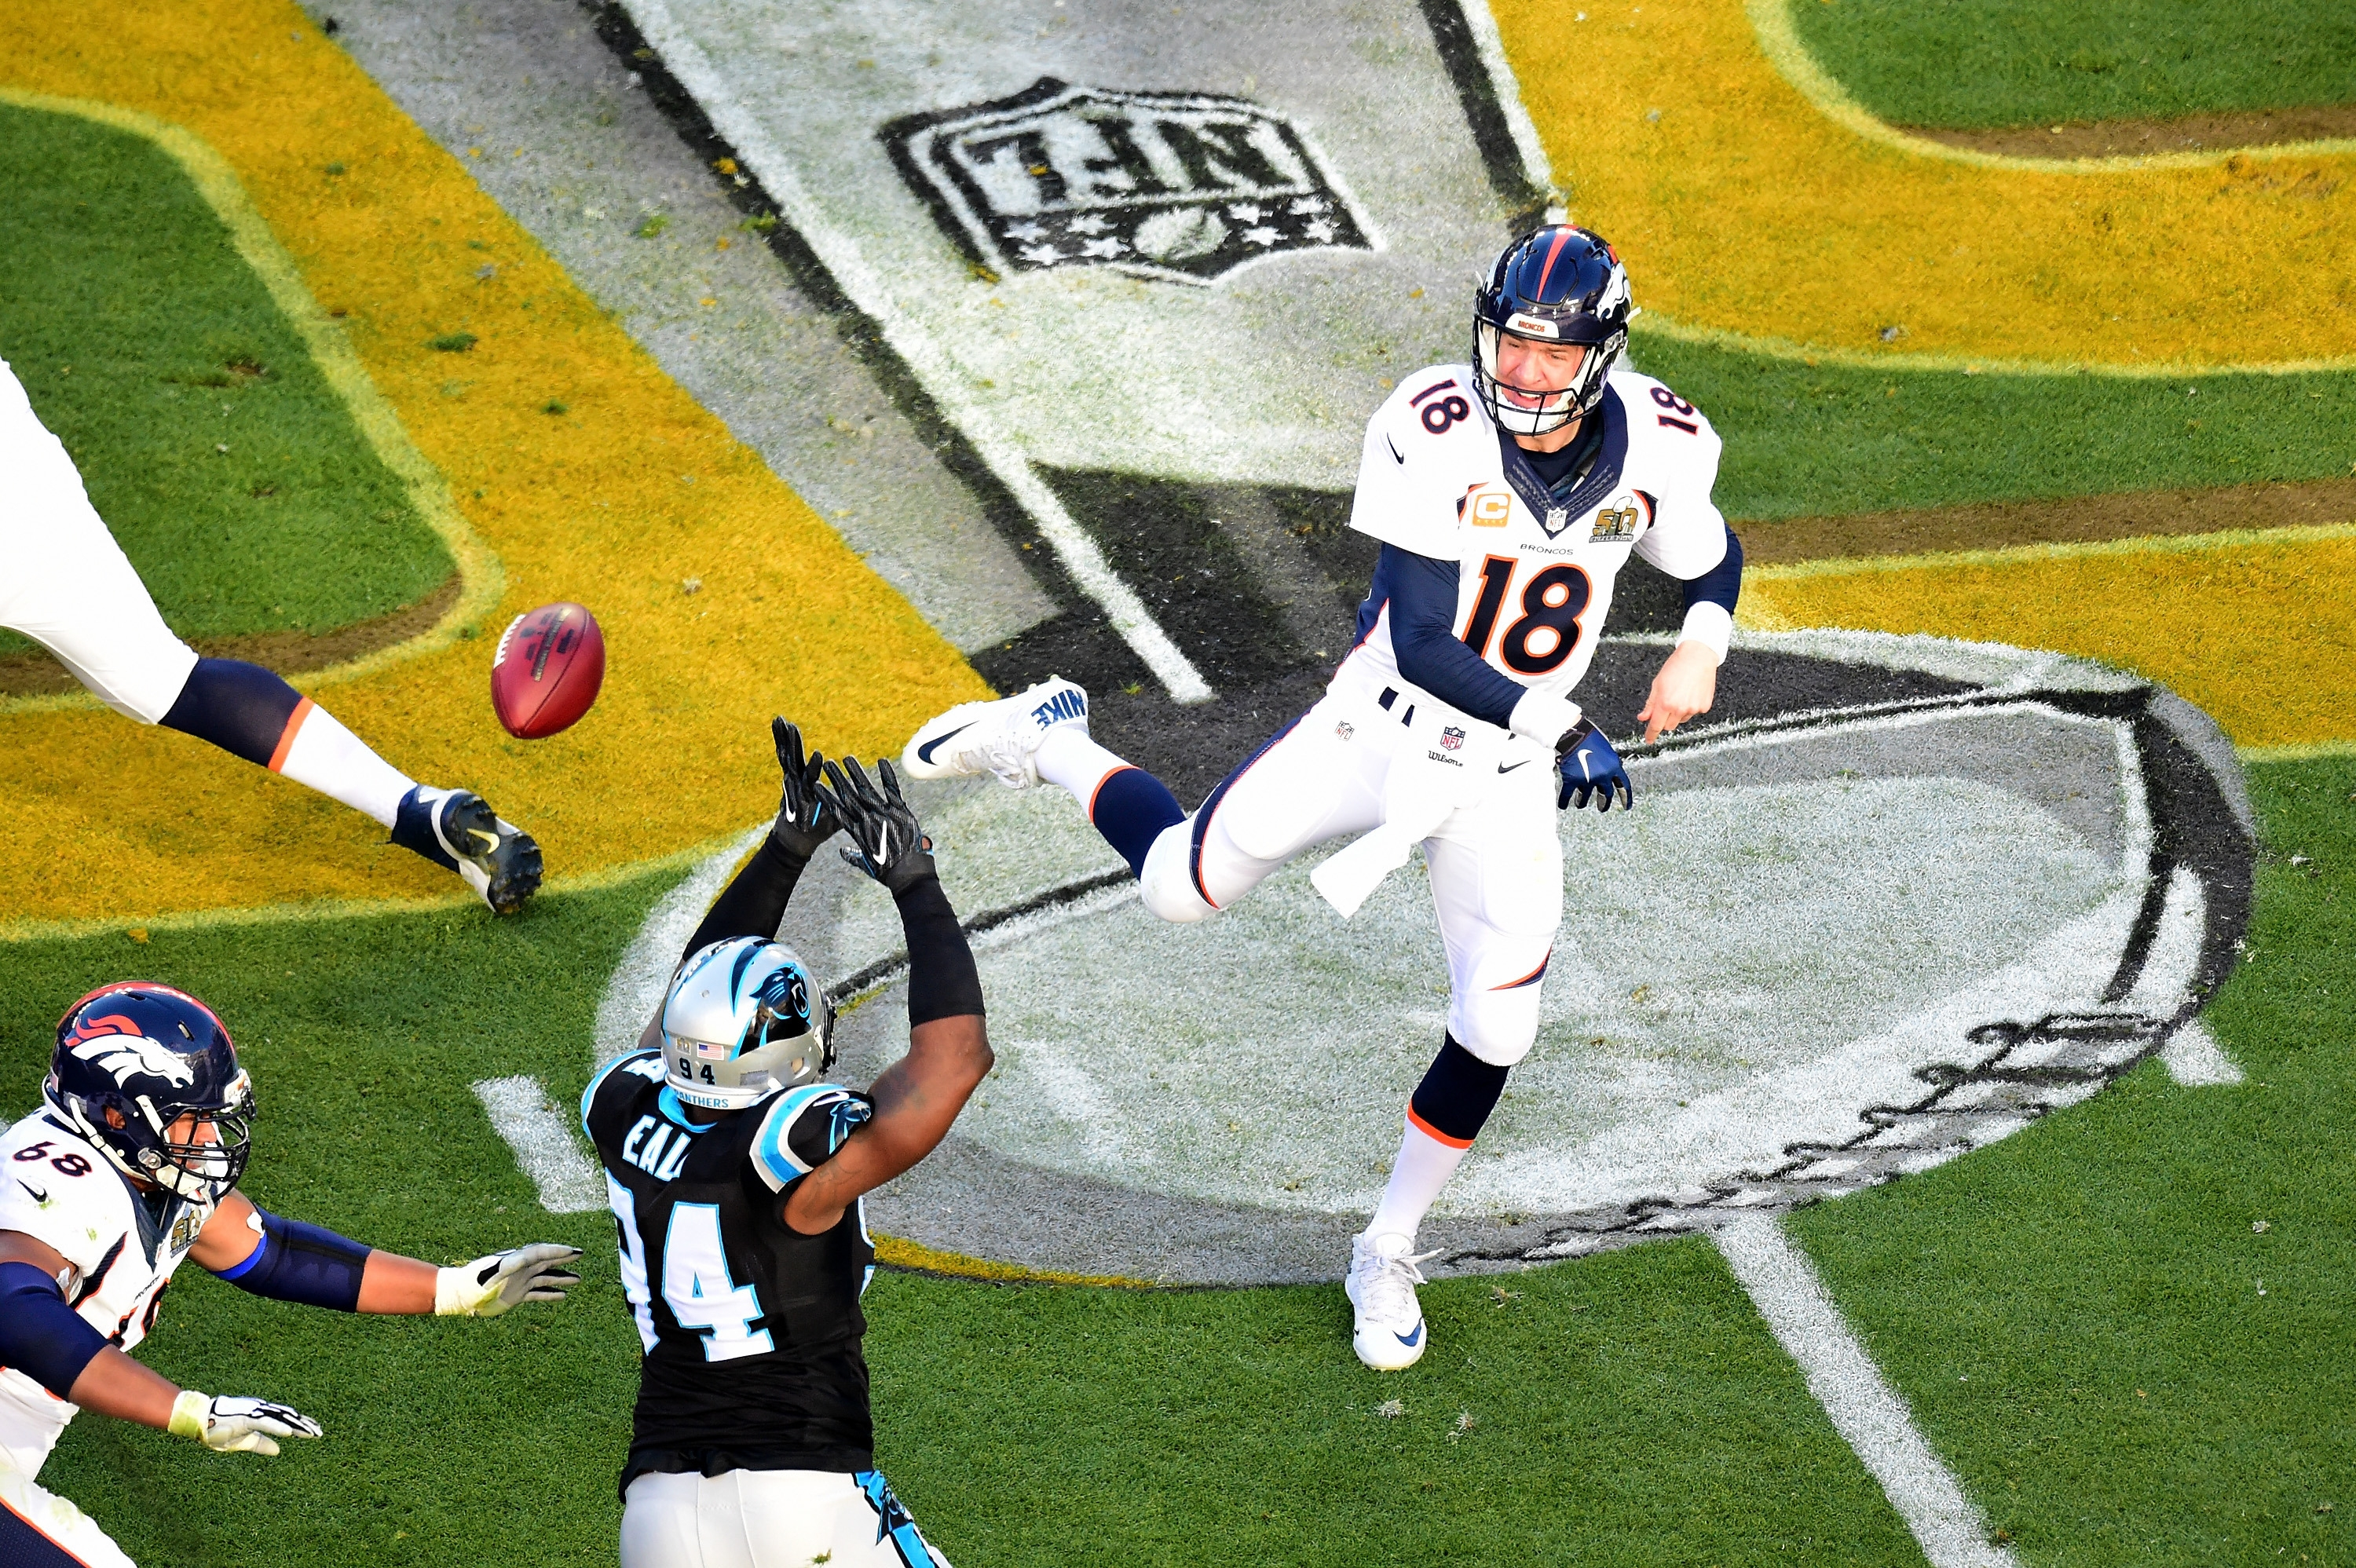 Peyton Manning's numbers for Super Bowl 50 were awful, but he became the 12th quarterback to win multiple Super Bowls.